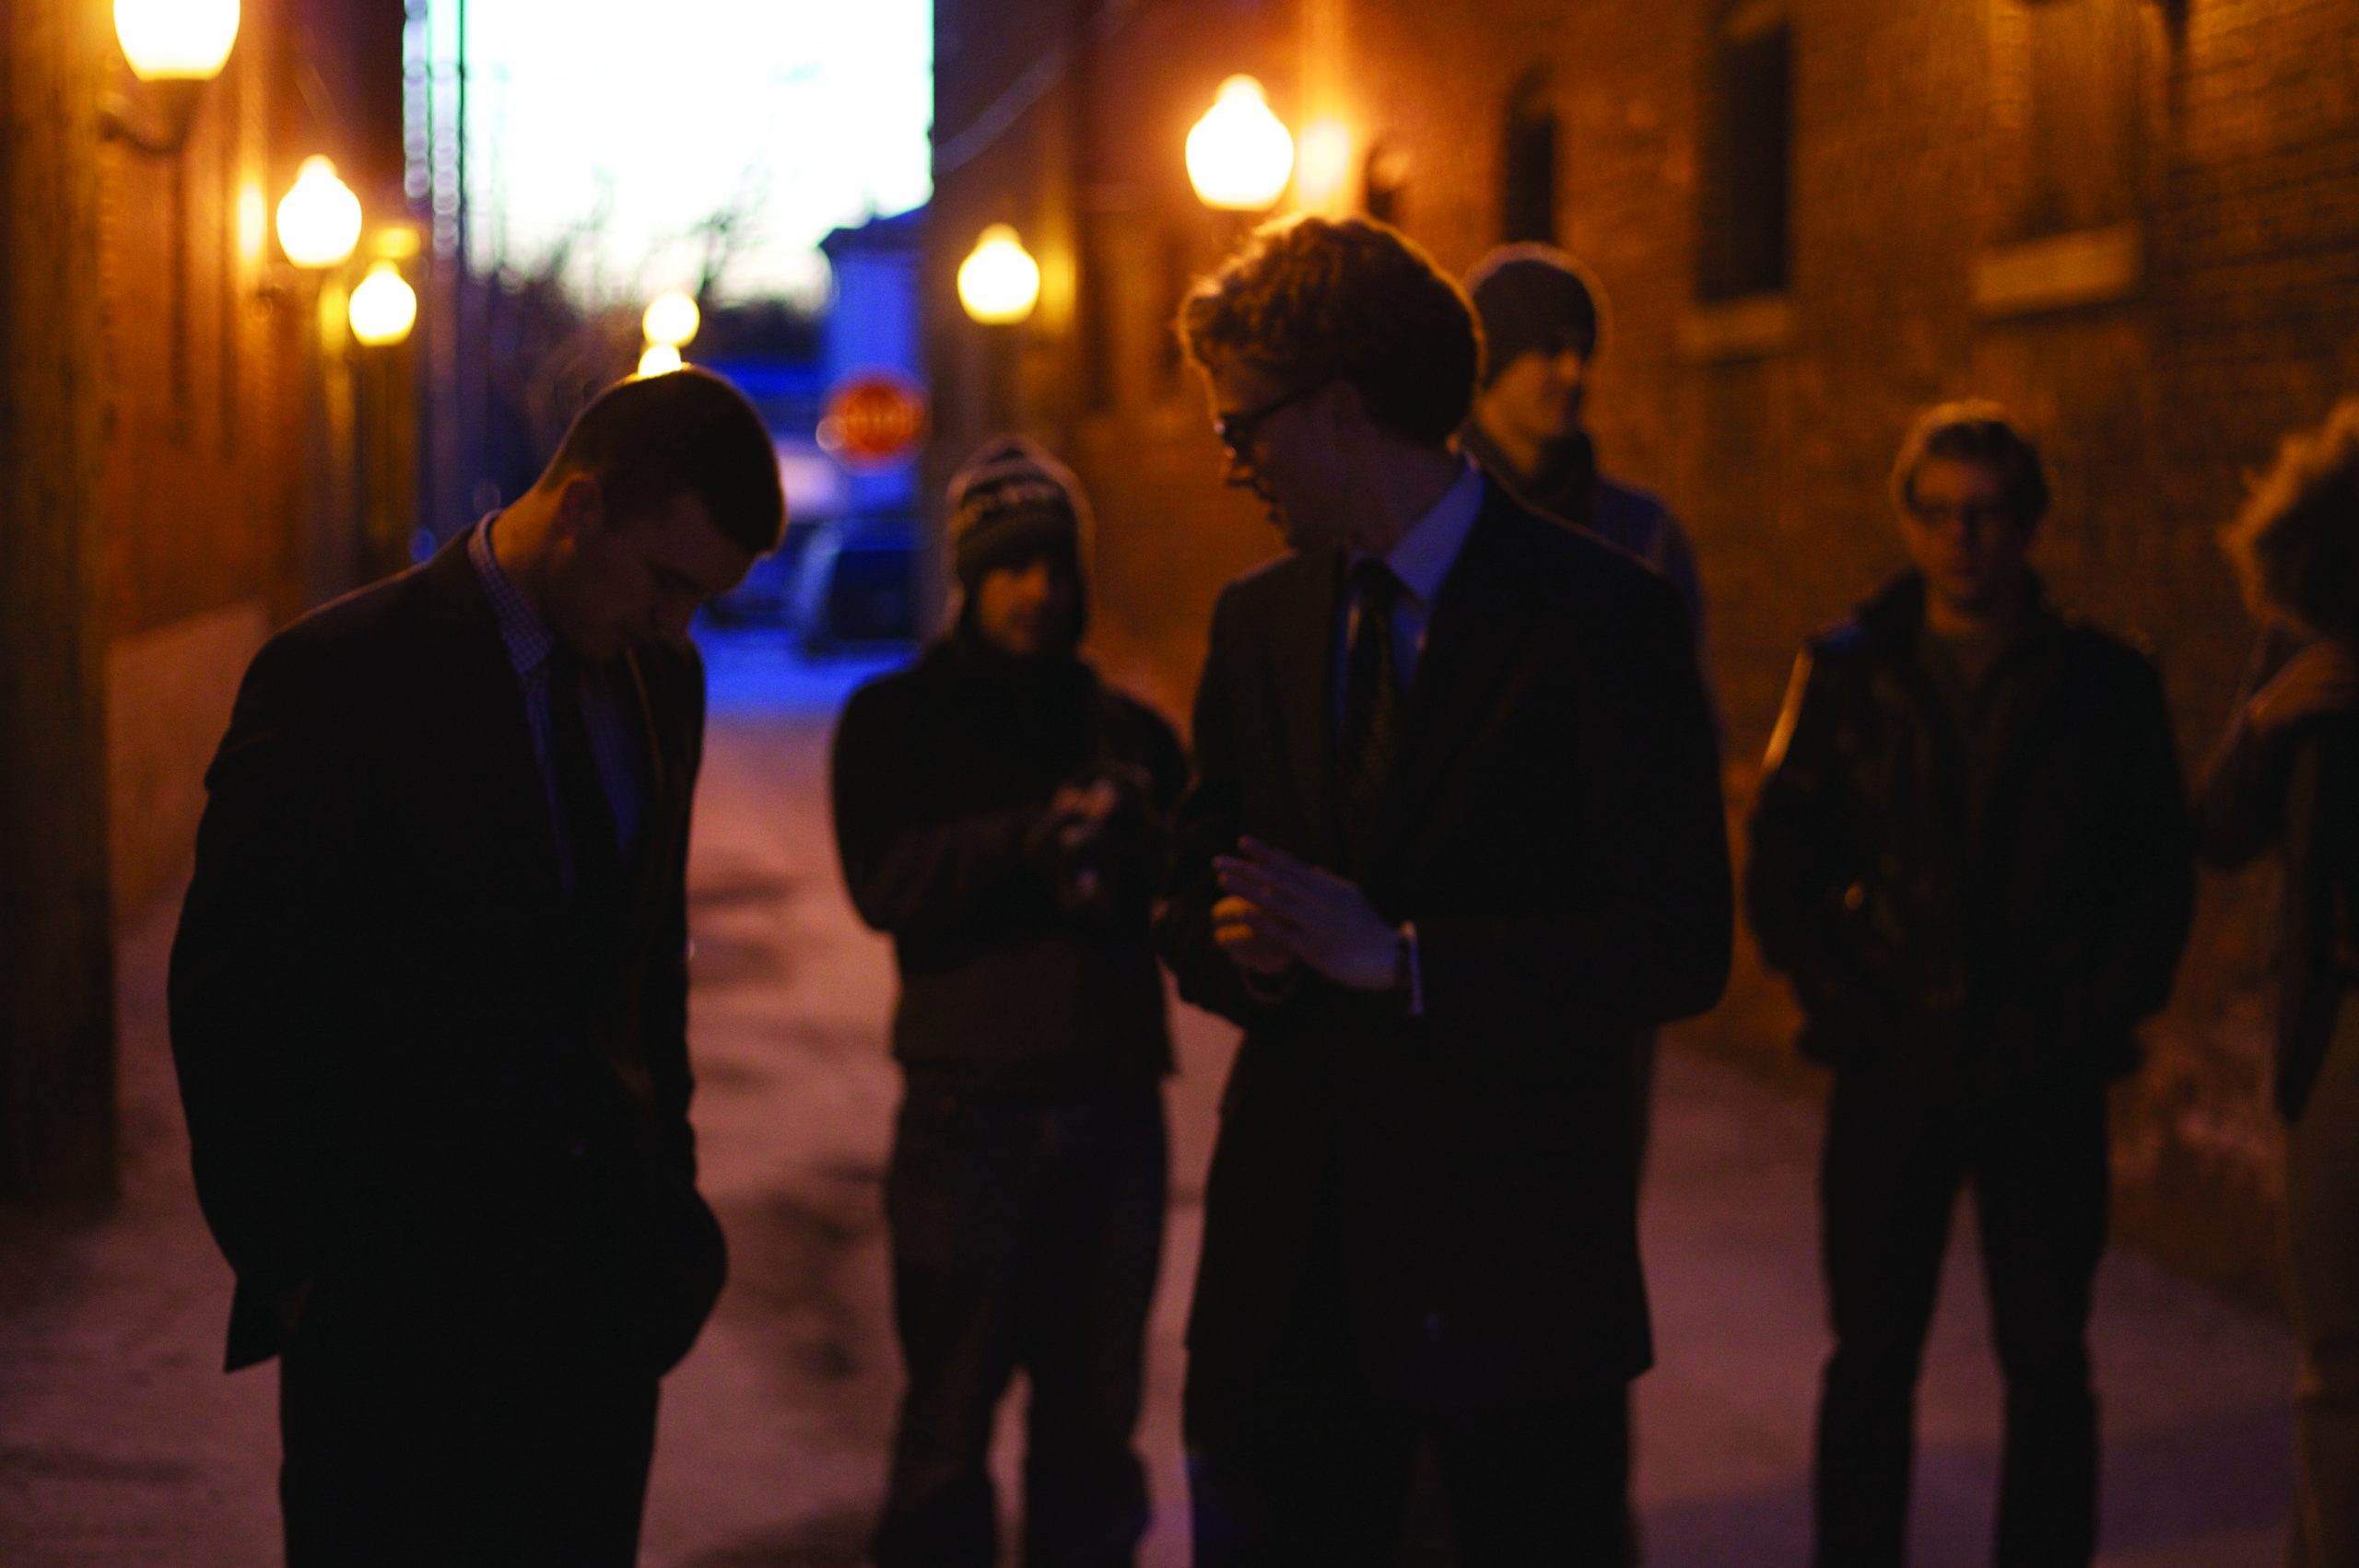 Photo of David Harnish and Abe Pauls in downtown Goshen at night